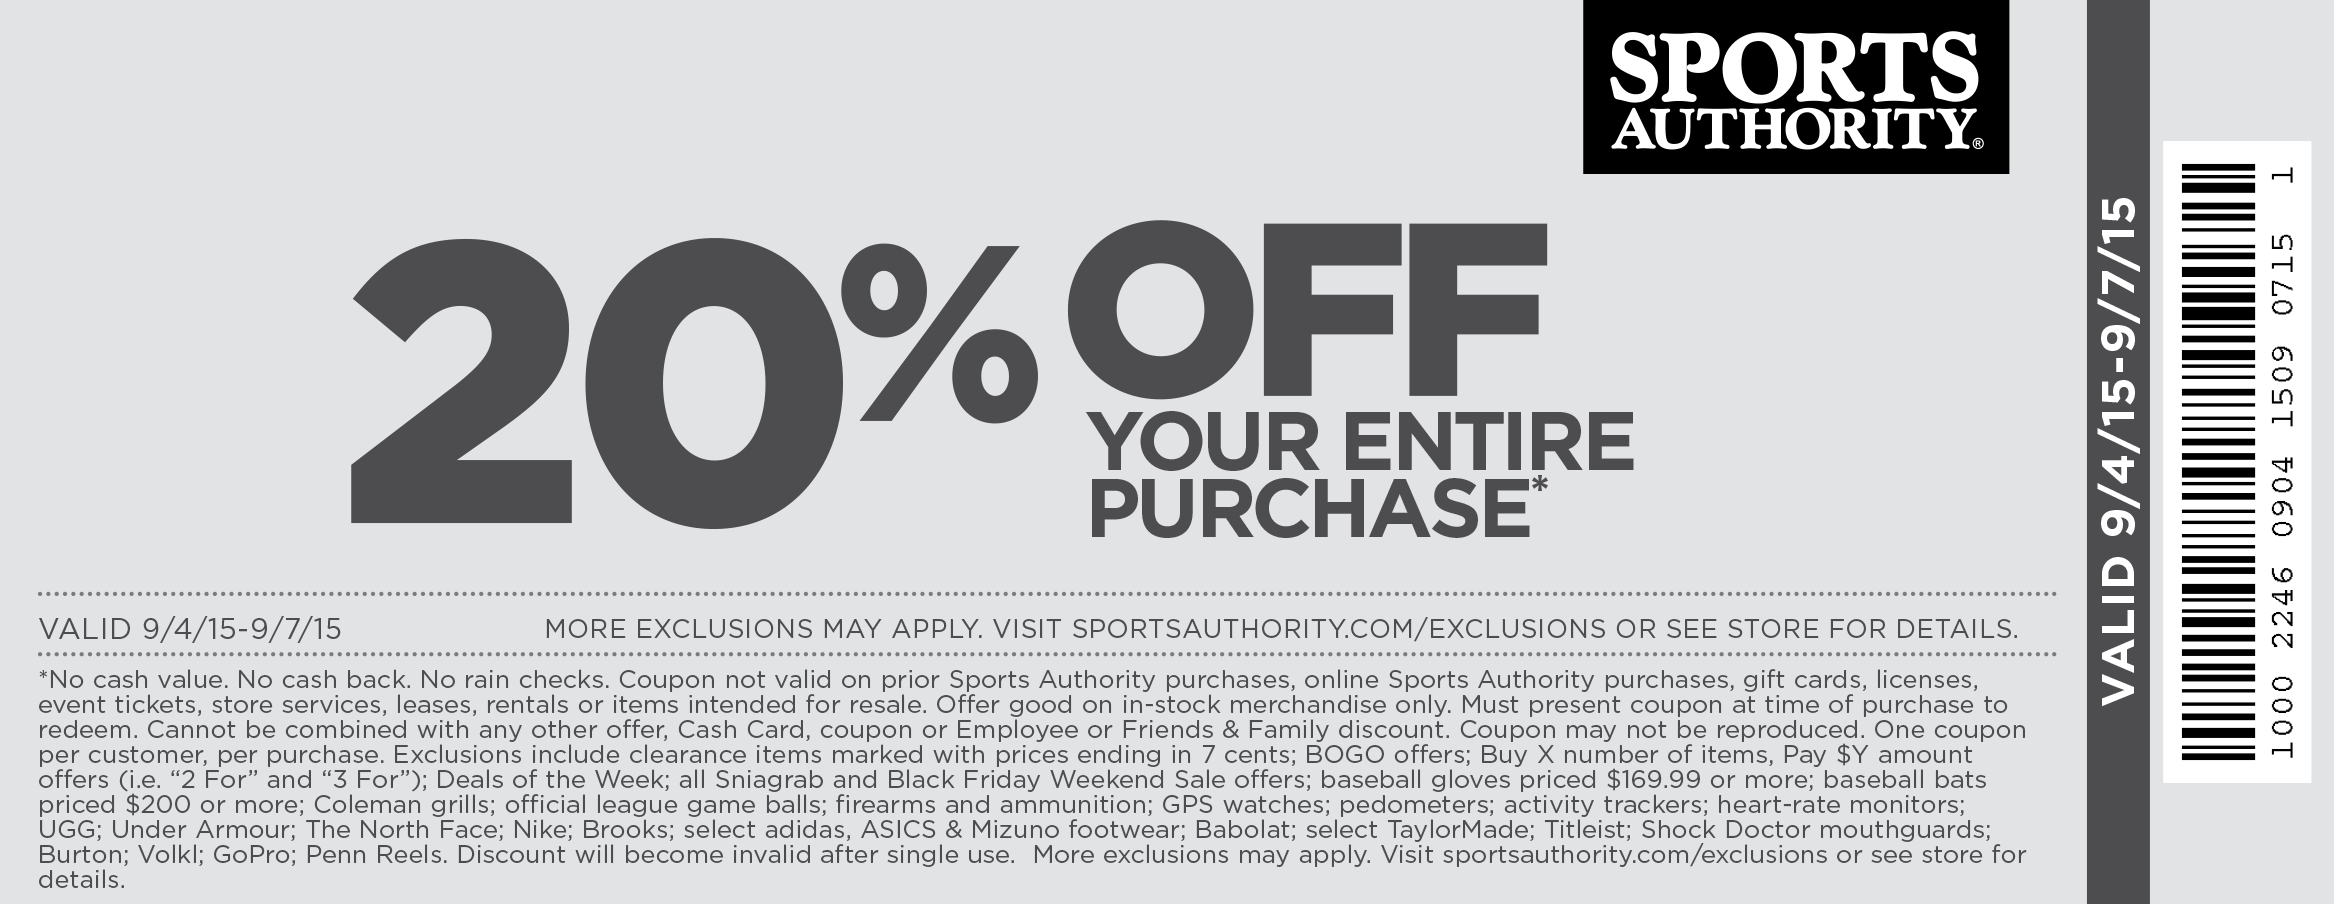 Liquidation sports coupon code discount